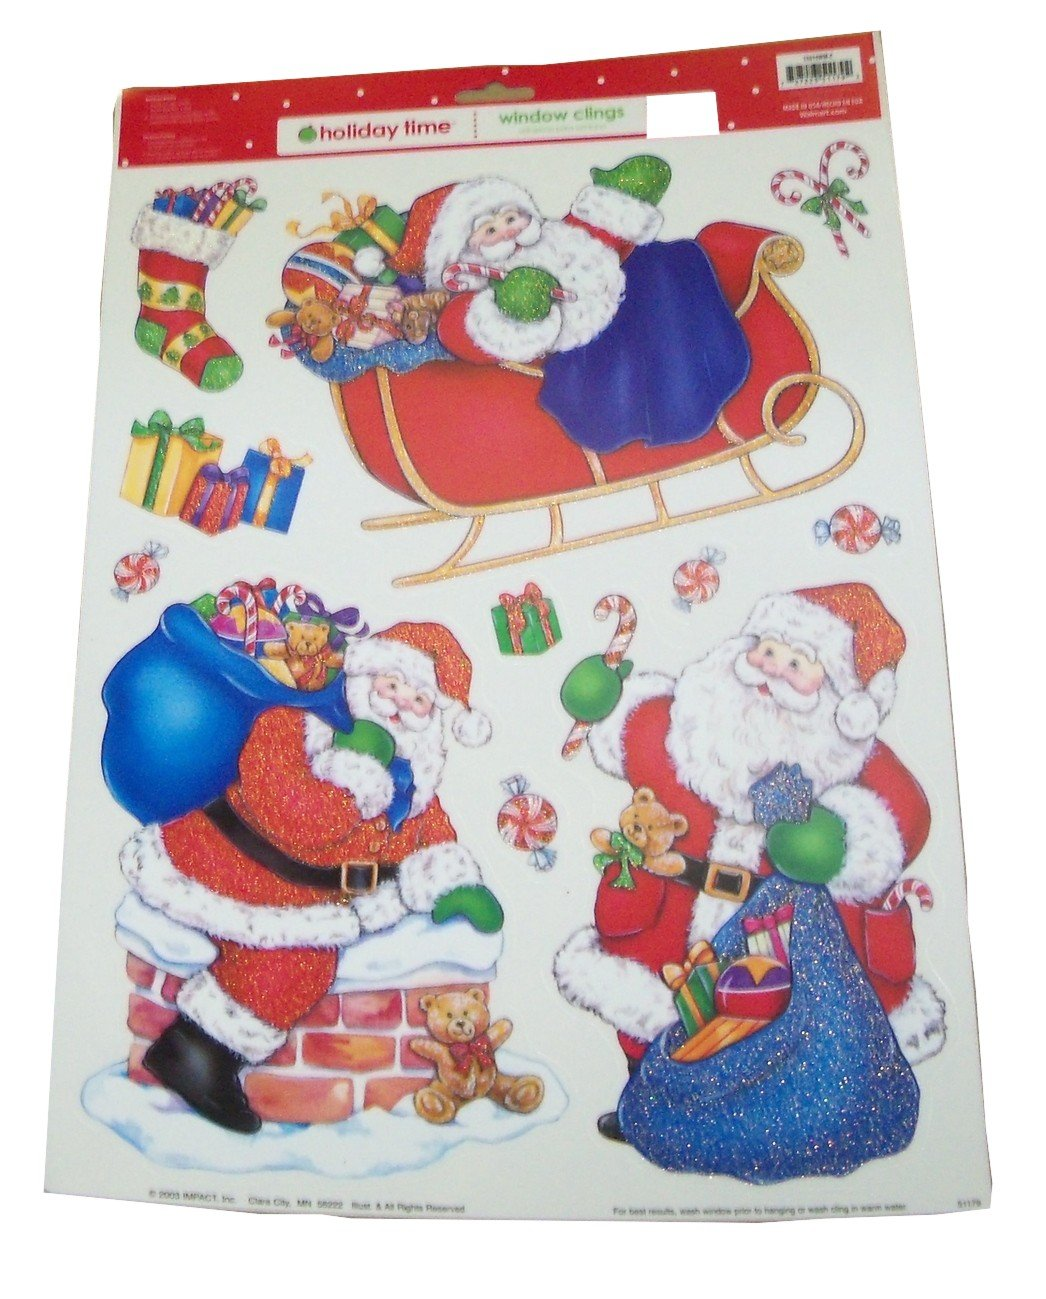 Christmas Glitter Reusable Window Clings ~ Santa on the Night Before Christmas (23 Clings, 1 Sheet)